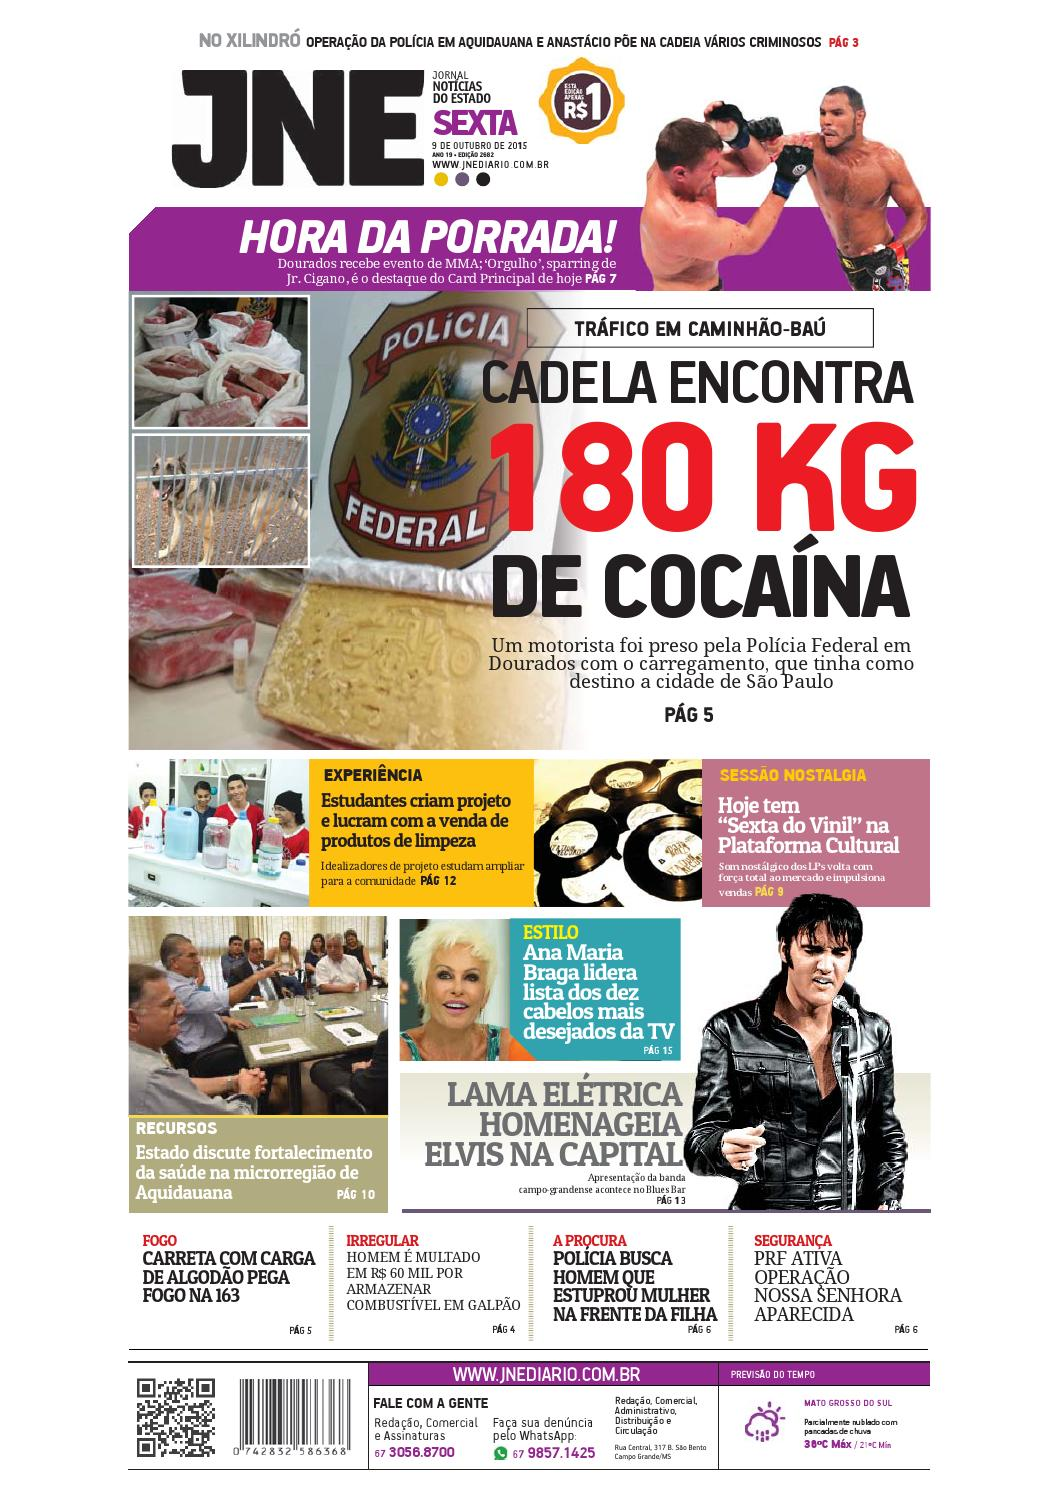 006c253692c 09 10 2015 by JNE - Noticias do Estado - issuu